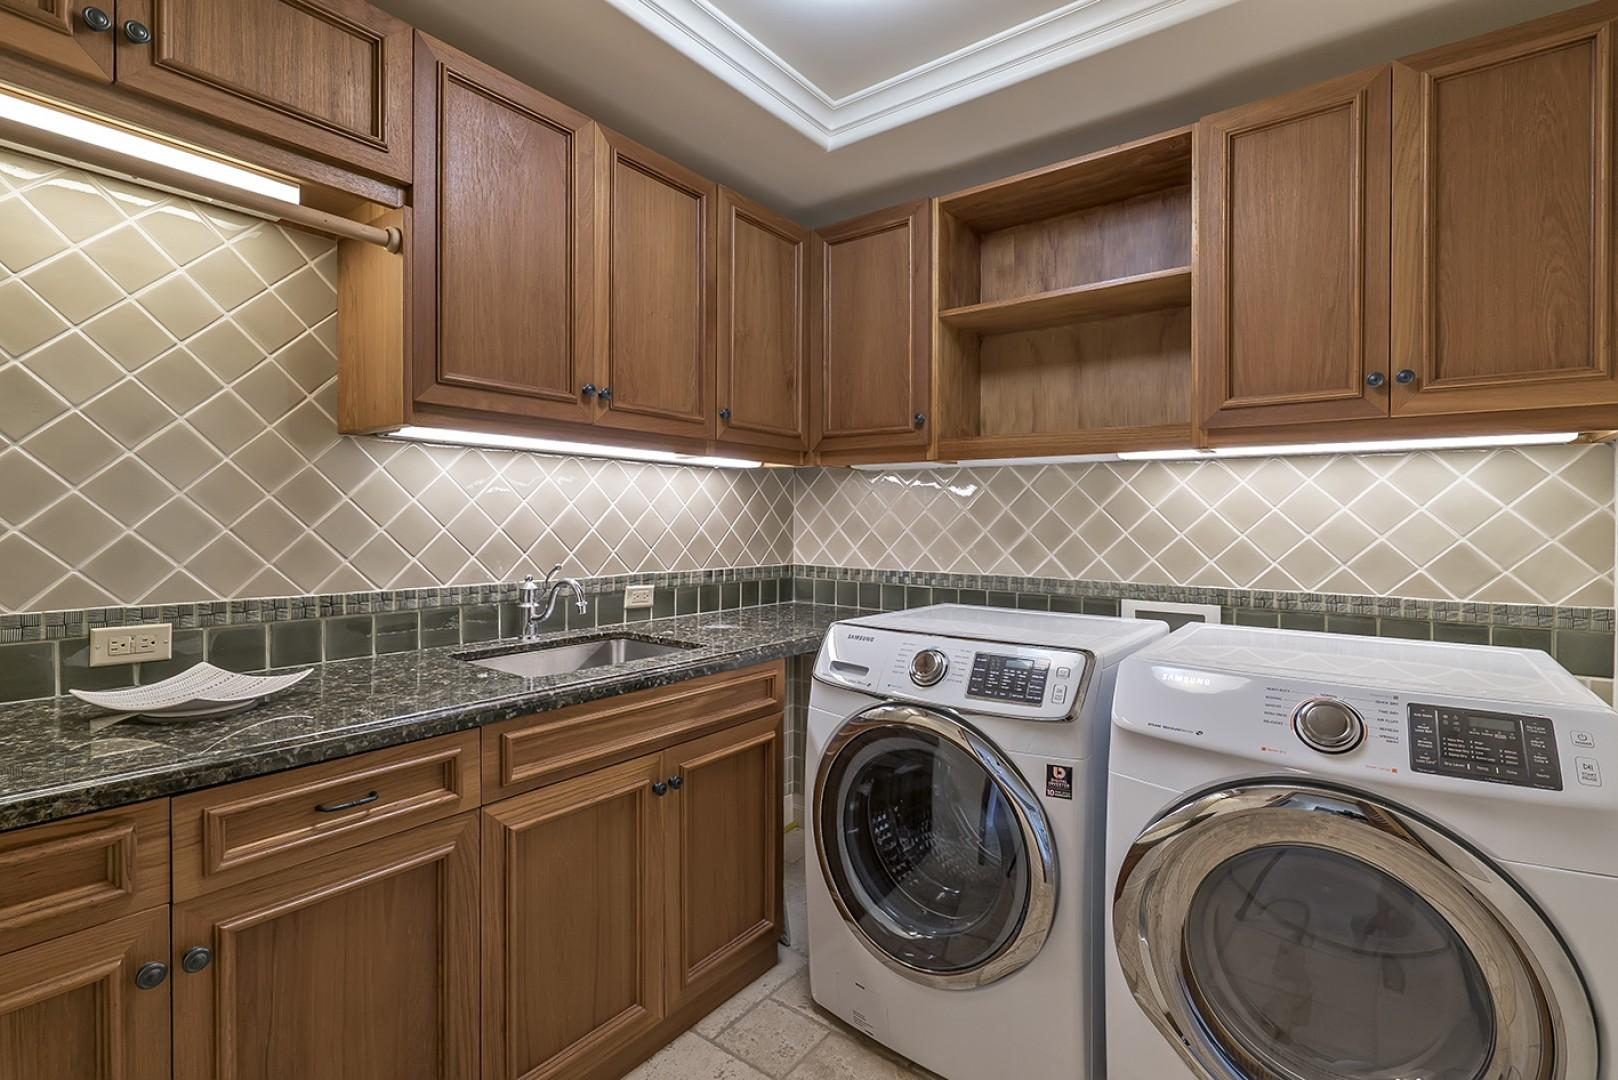 Guest house: Laundry room